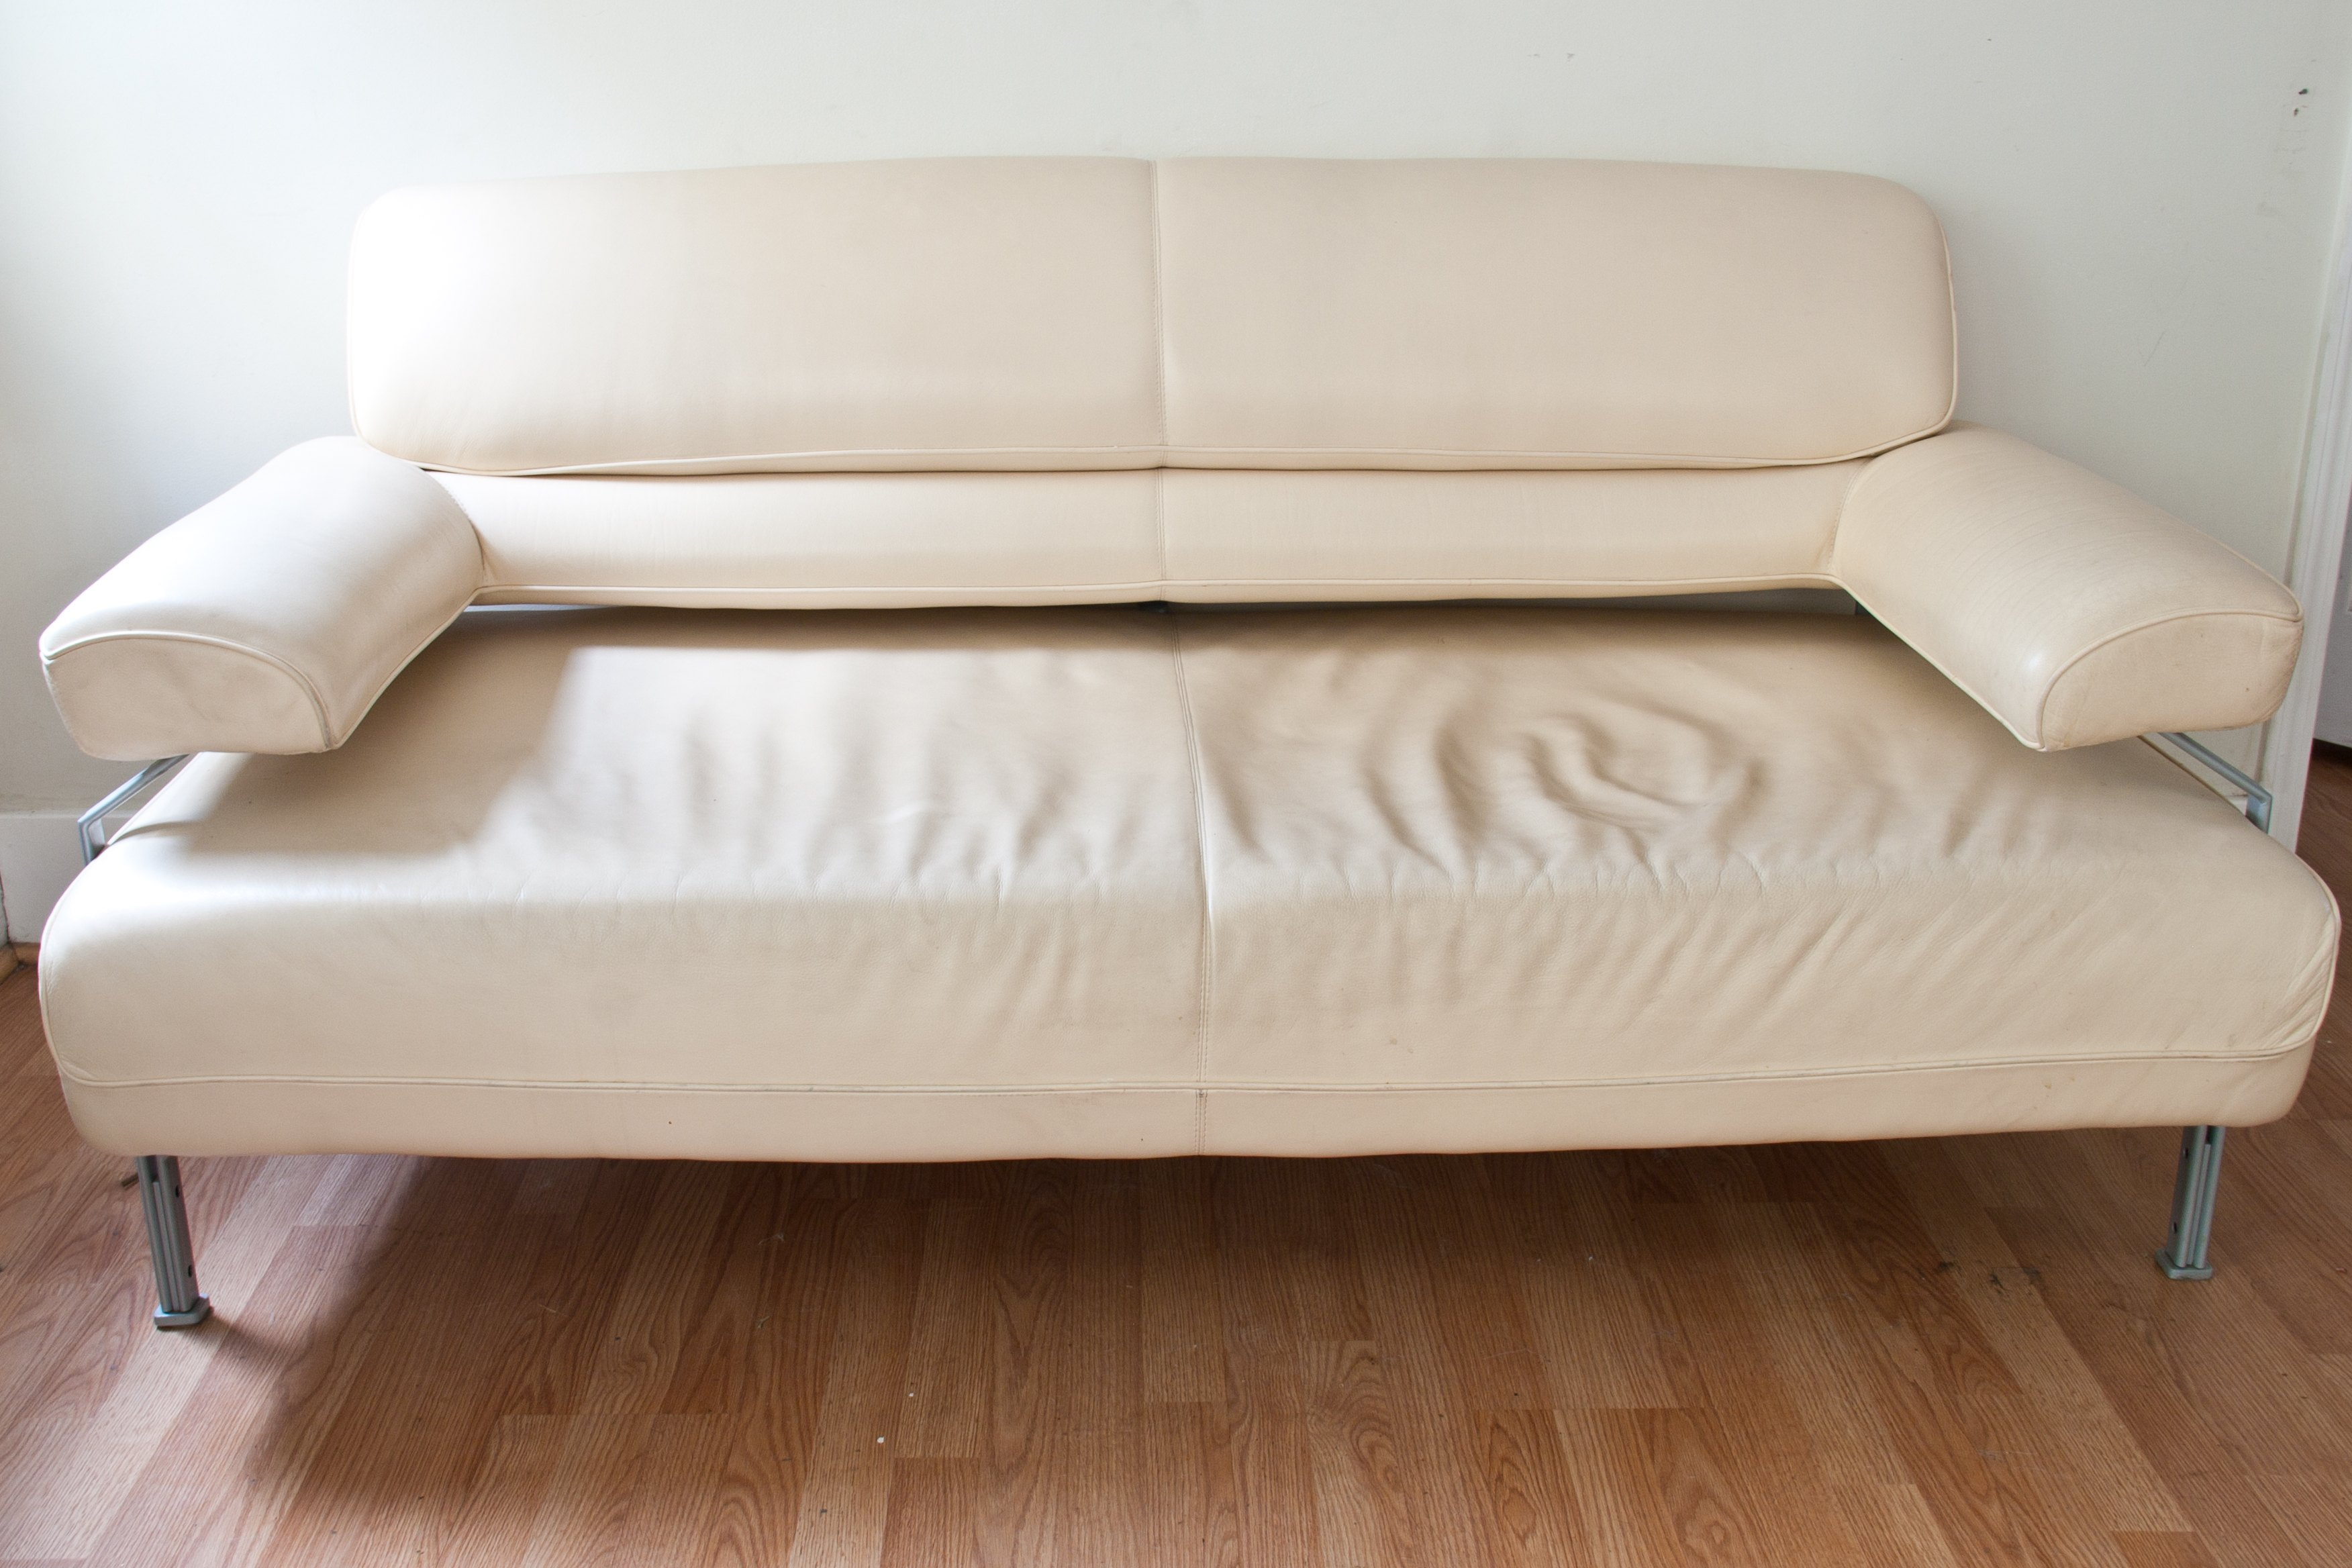 good leather cleaner for sofas sacramento ca homemade furniture with pictures ehow